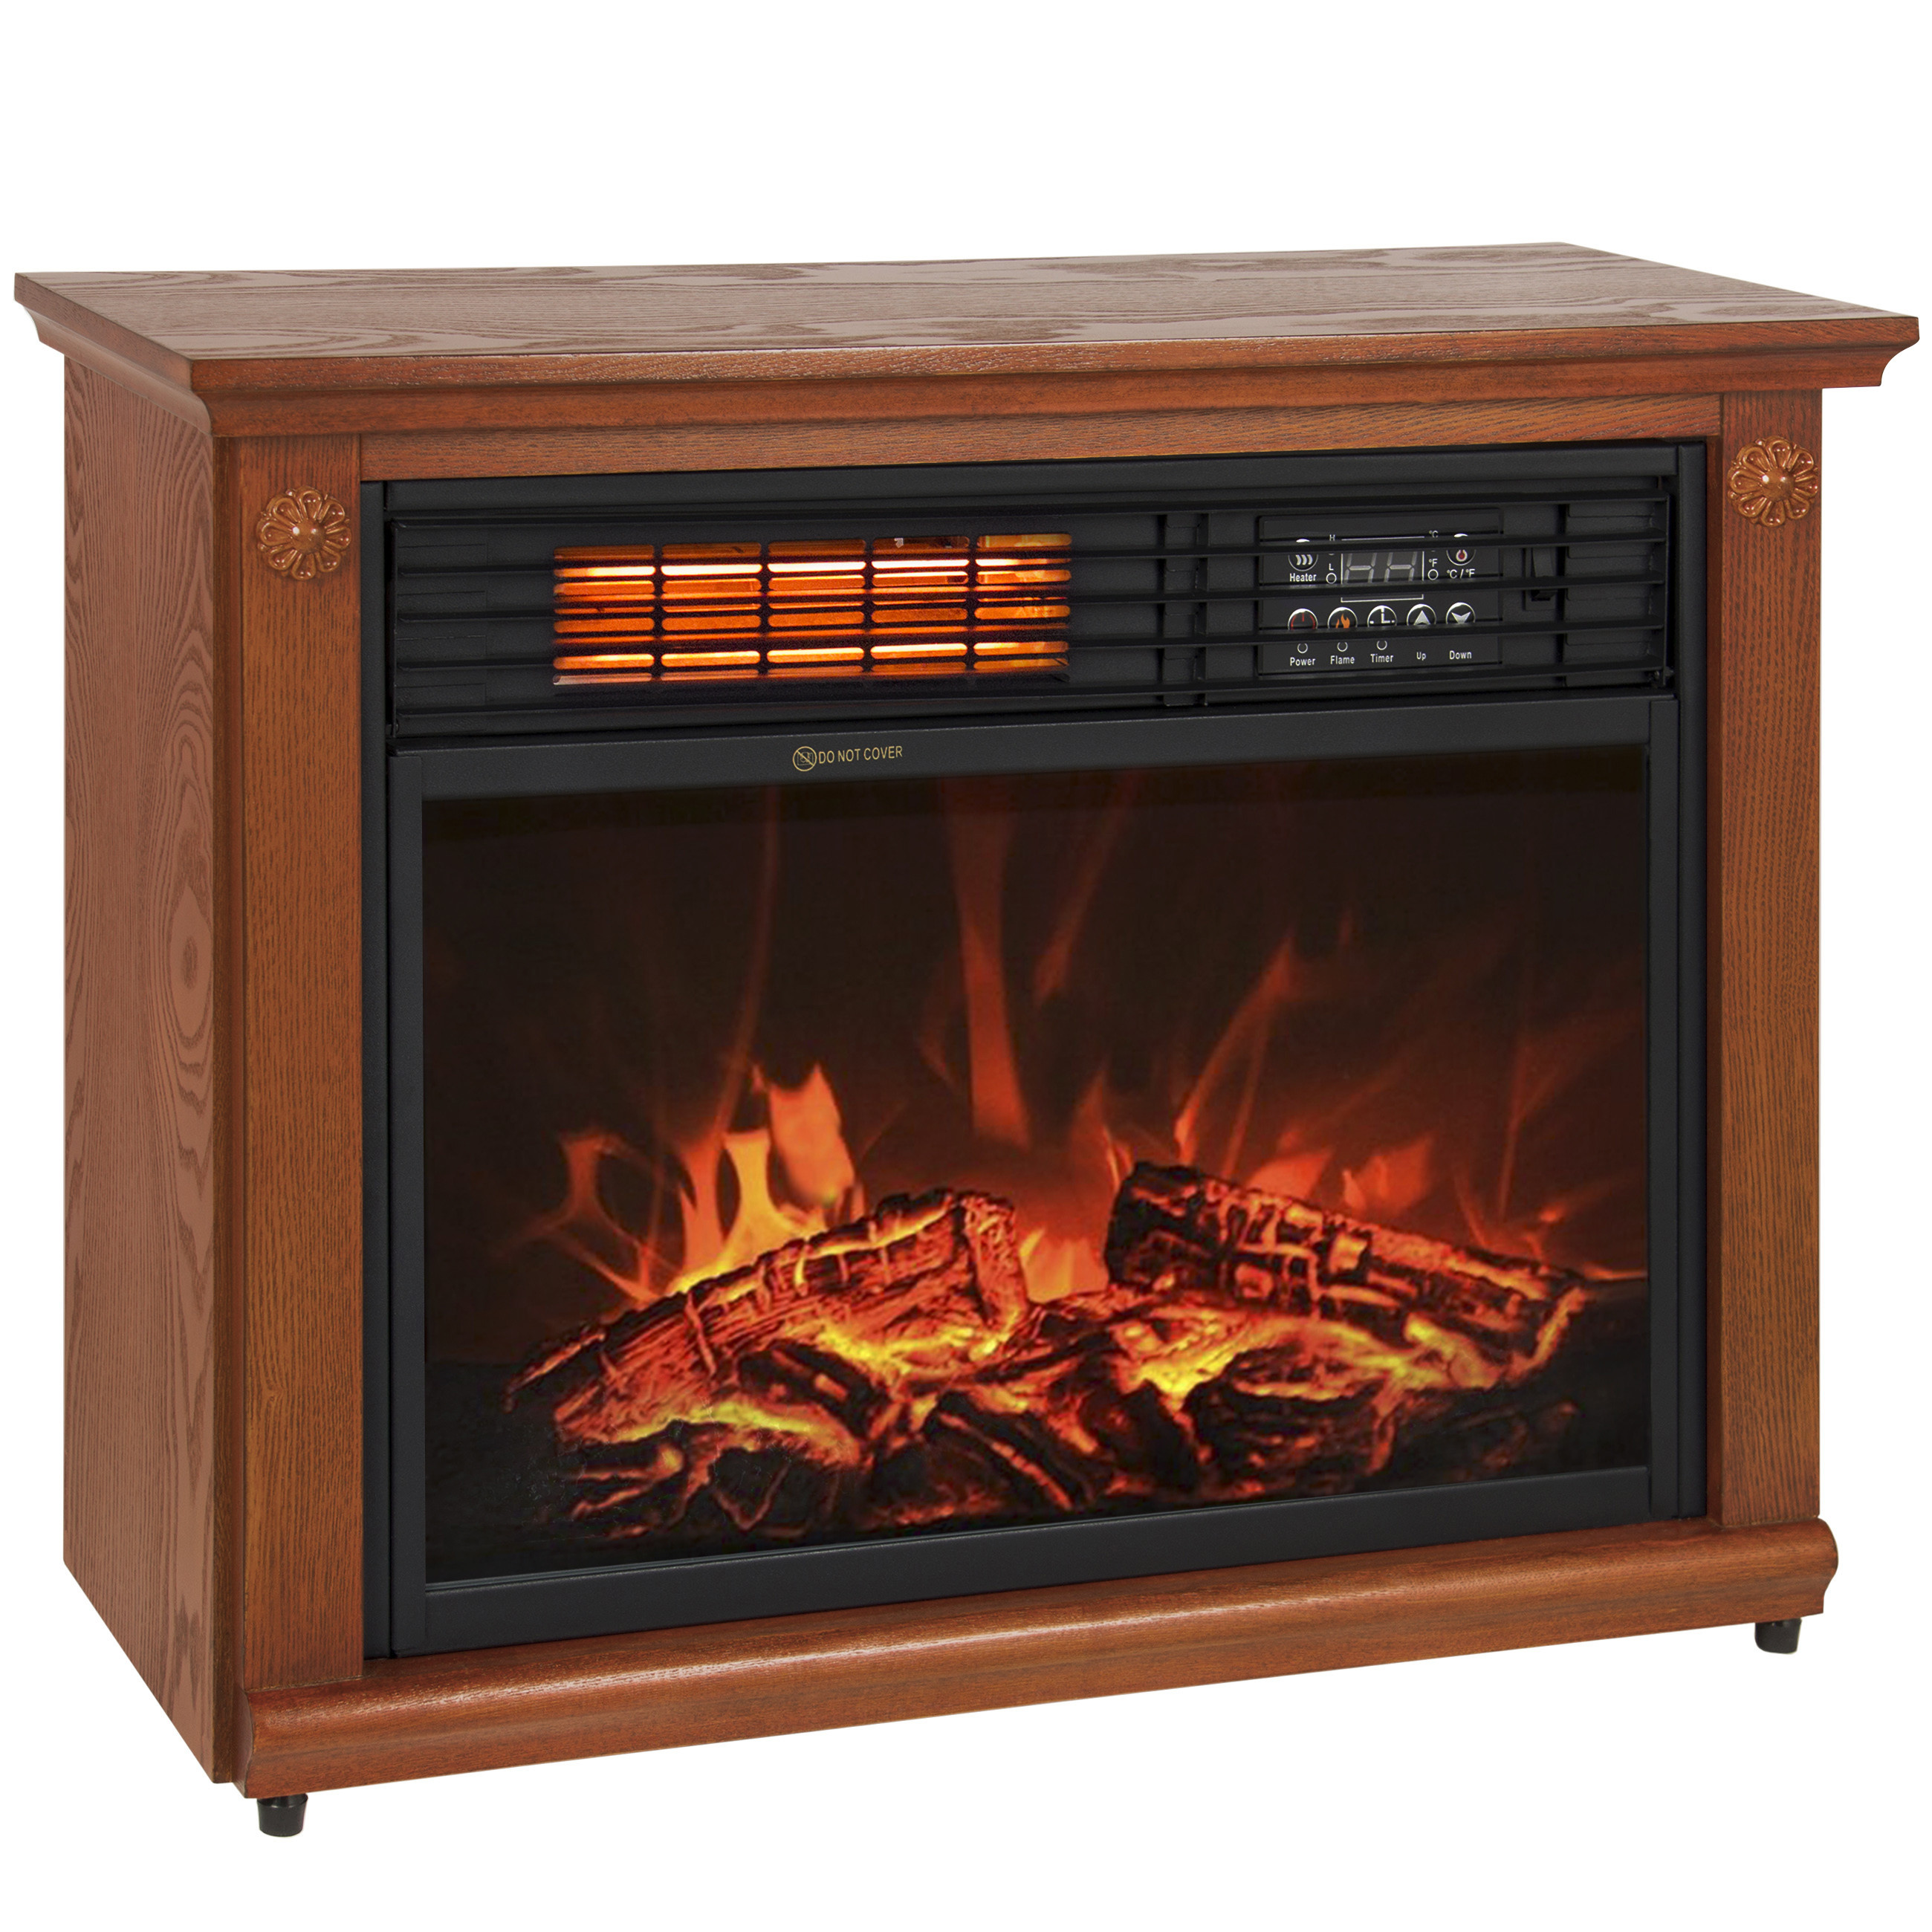 Best ideas about Fireplace Electric Heater . Save or Pin Room Infrared Quartz Electric Fireplace Heater Honey Now.